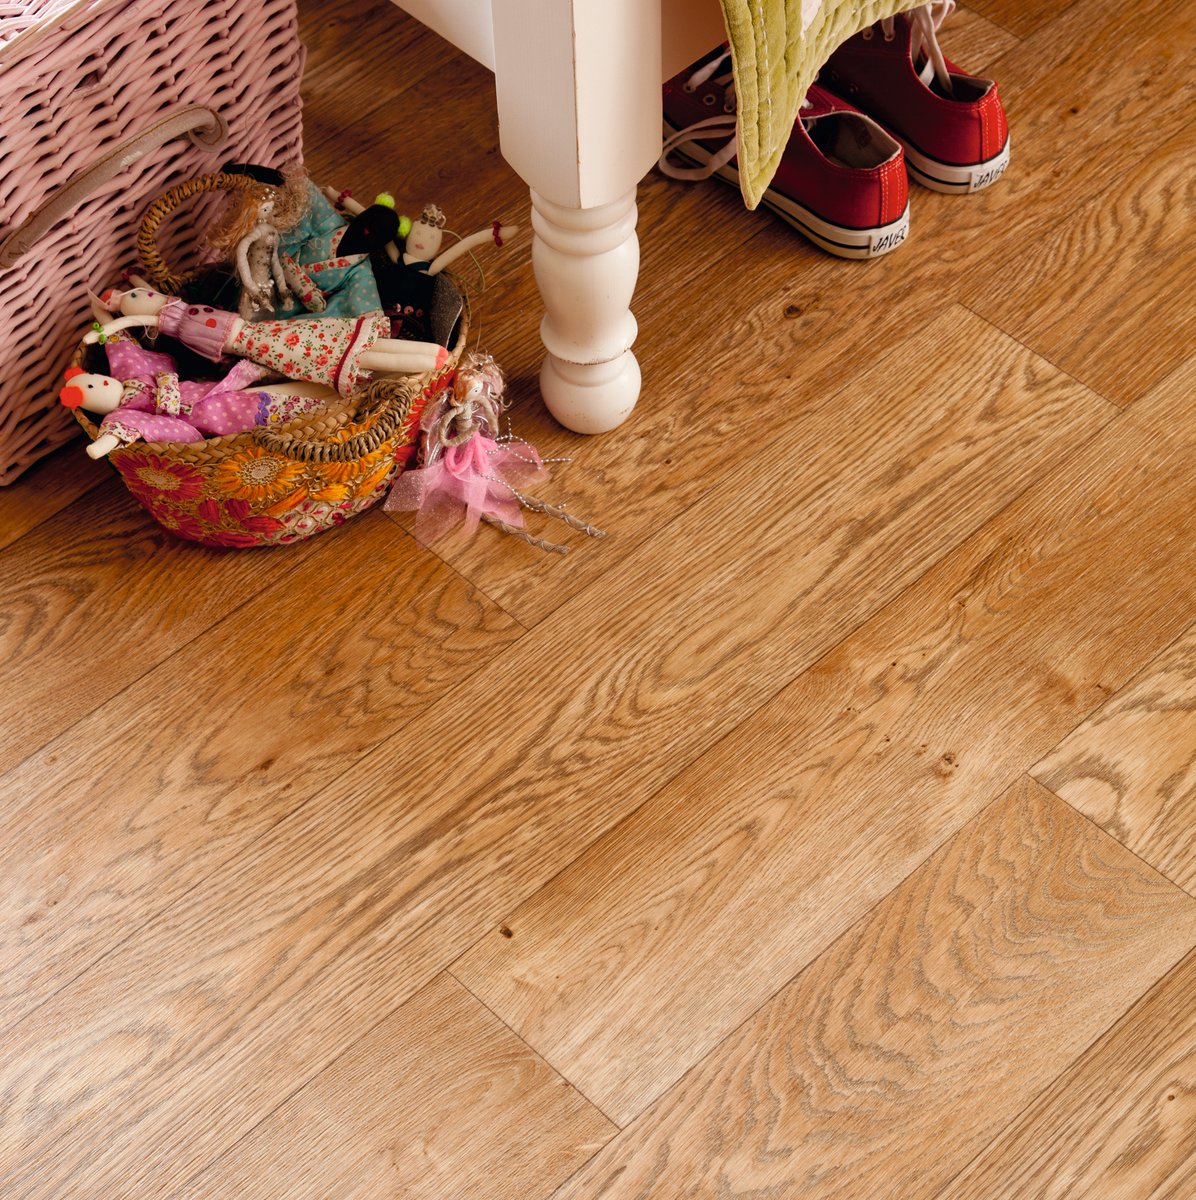 Realistic Wood Effect Vinyls. Hard wearing, easy clean, acoustically sound flooring, available in many shades here at Chrysties!  #chrysties #flooring #vinyl #wood